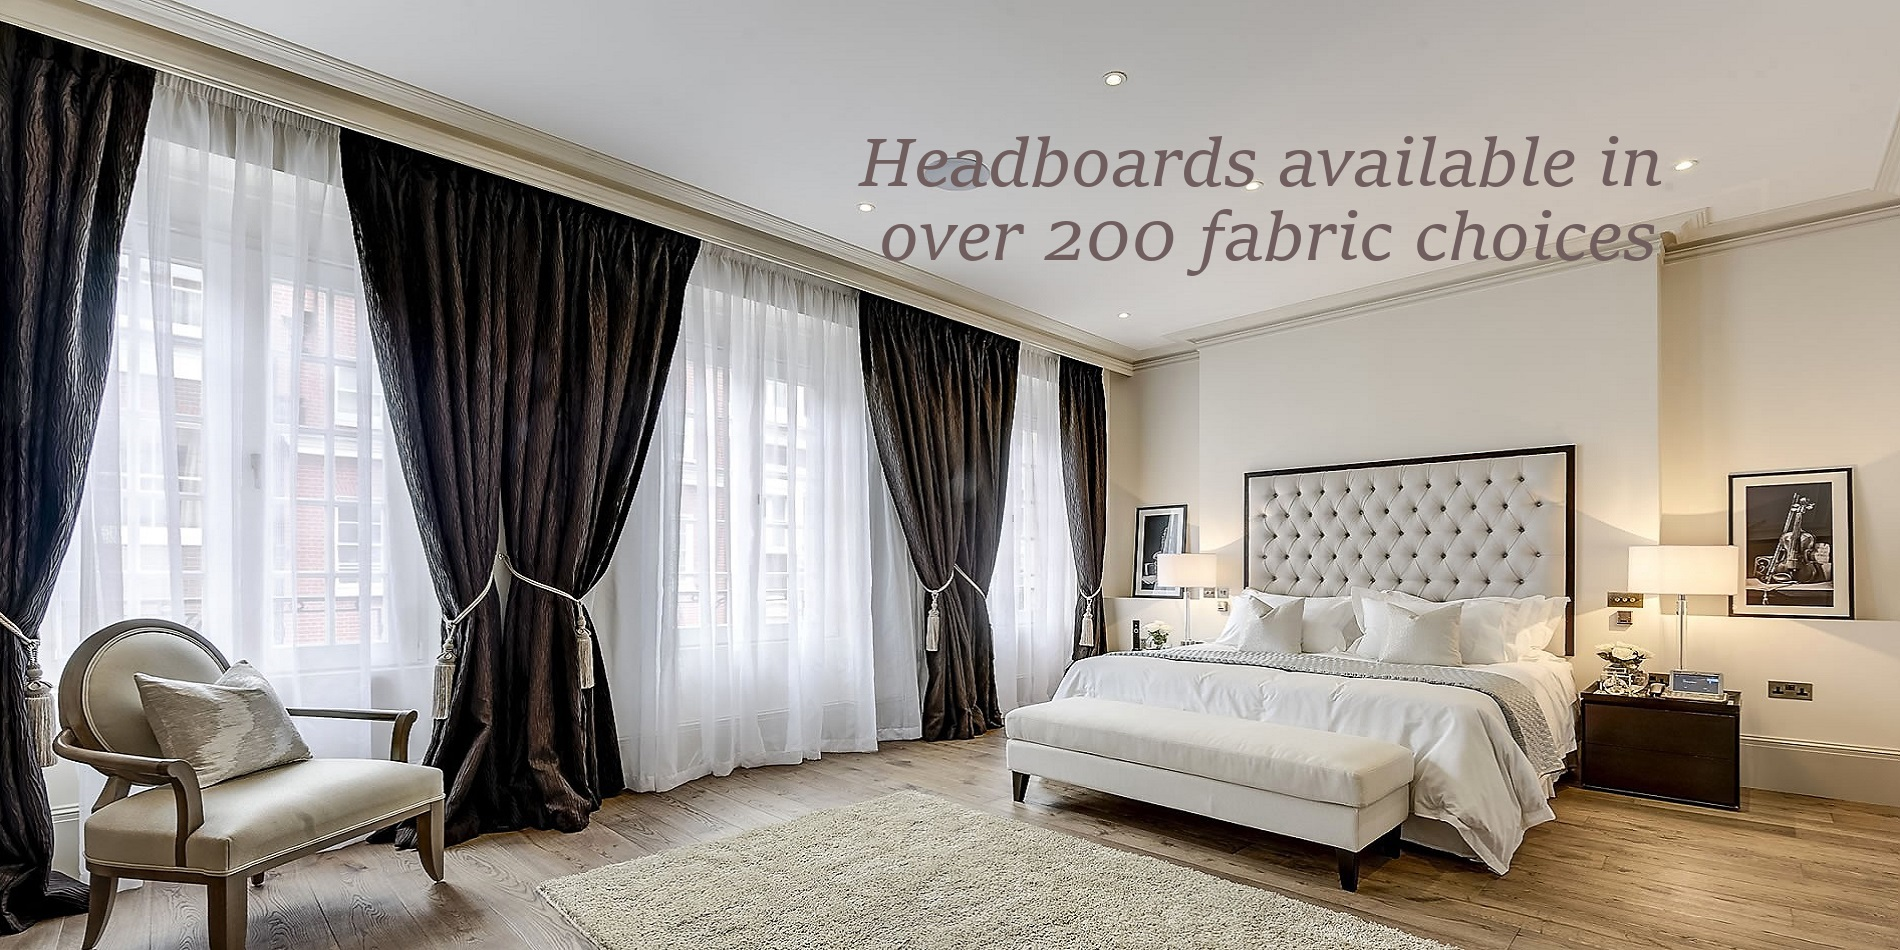 Headboards and Interiors